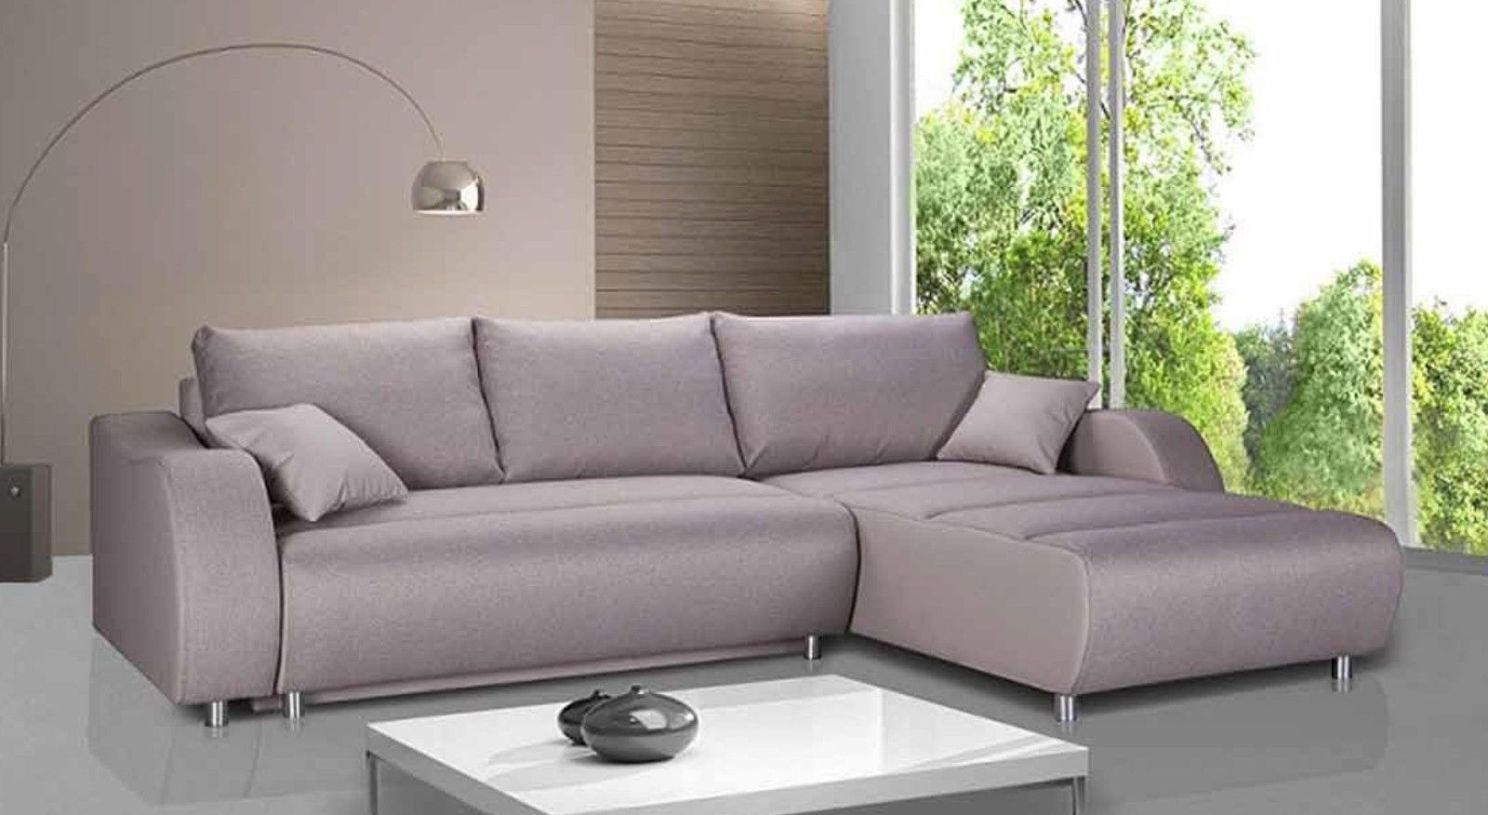 Get The Best Trendy Corner Sofa Beds Of 2018 Market In Gorgeous Grey Affordable Sofa Corner Sofa Bed Sofa Decor